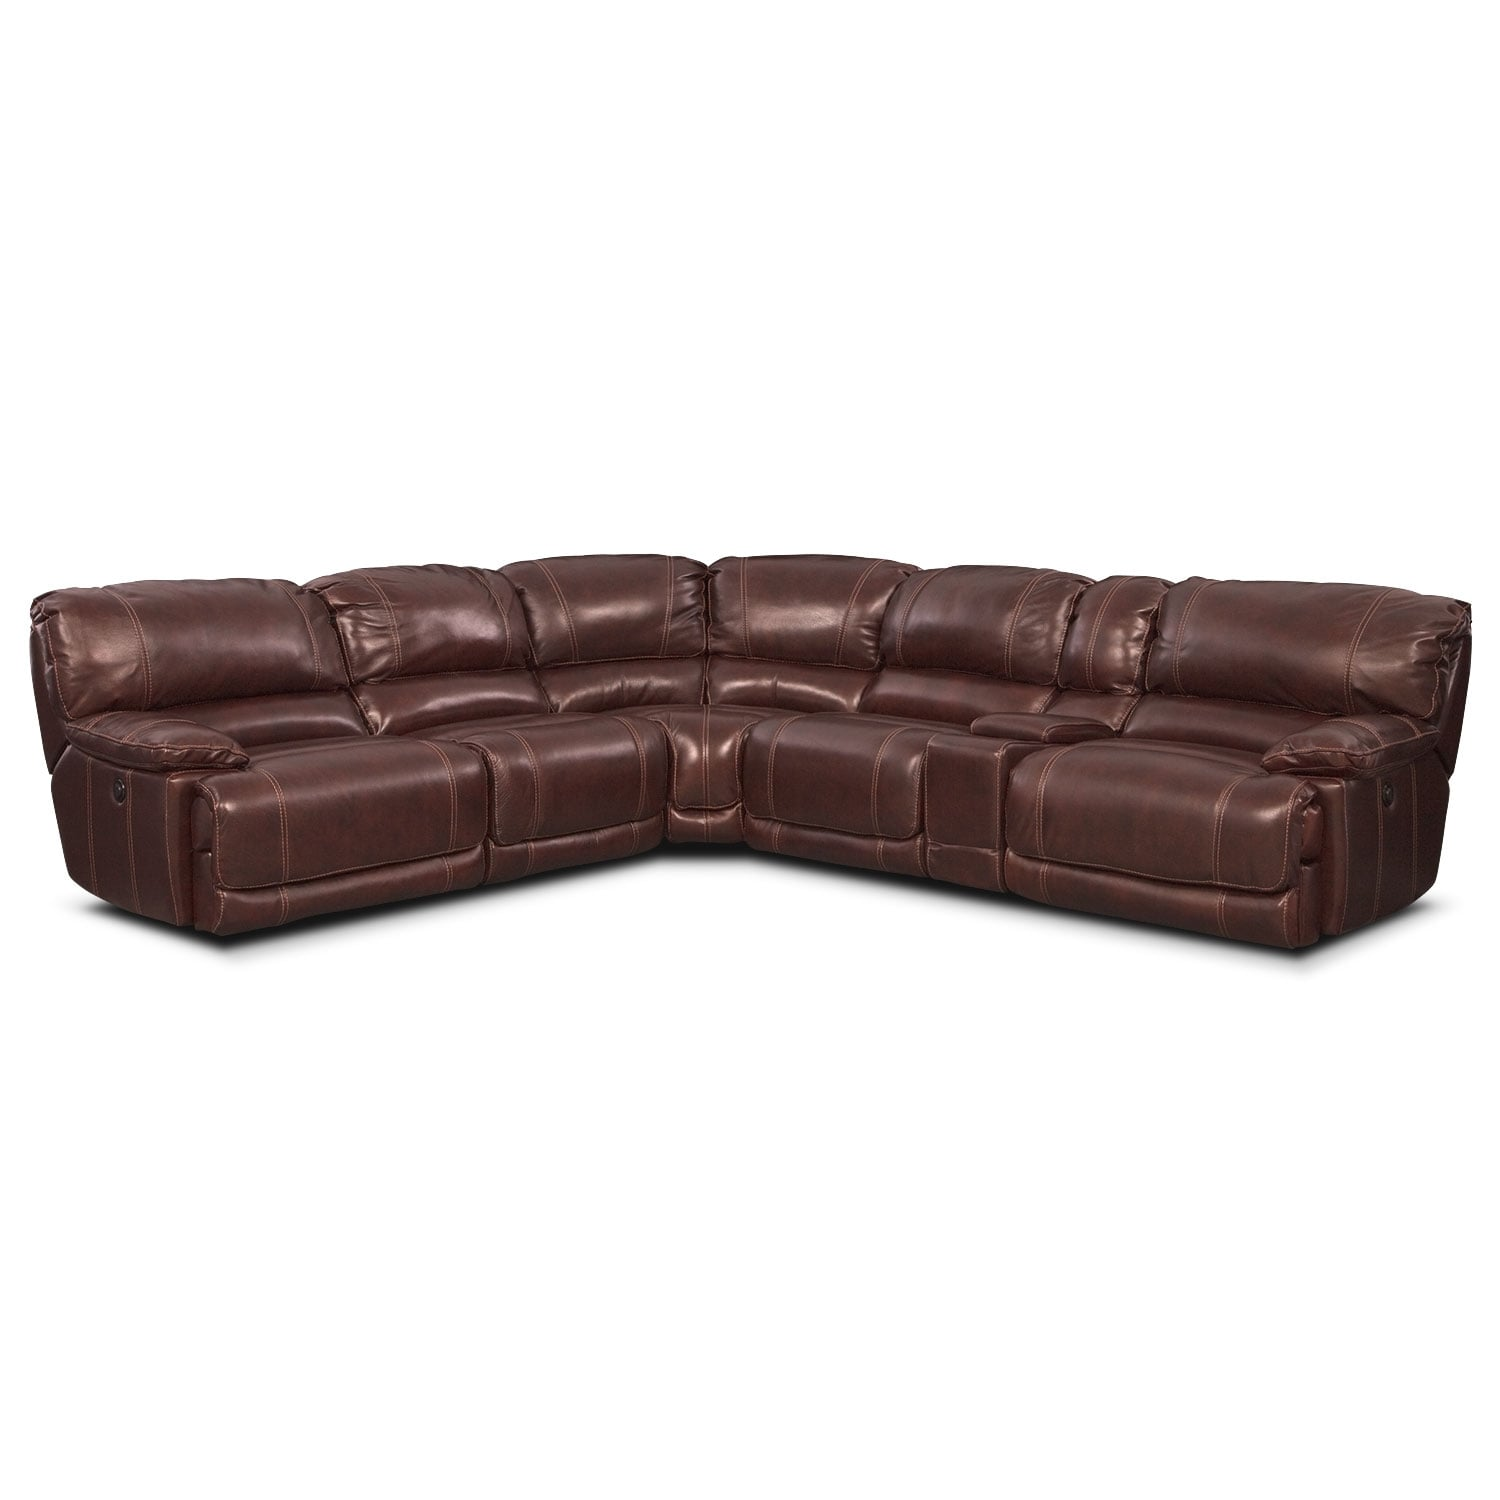 Living Room Furniture - St. Malo III 6 Pc. Power Reclining Sectional (Alternate)